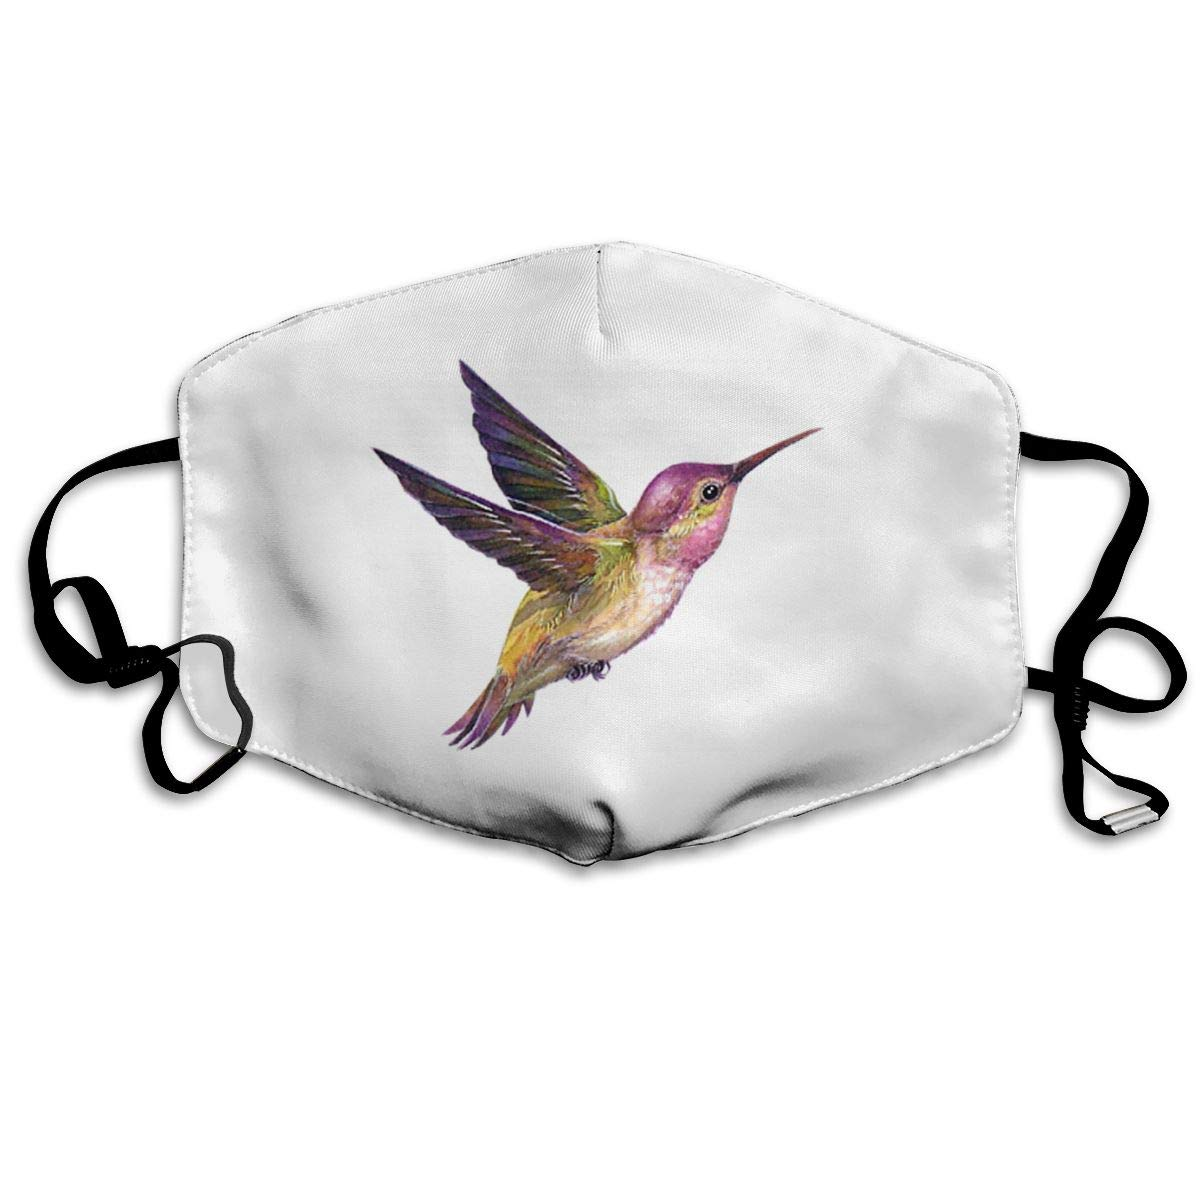 Mouth Mask Pink Hummingbird Print Masks - Breathable Adjustable Windproof Mouth-Muffle, Camping Running For Women And Men